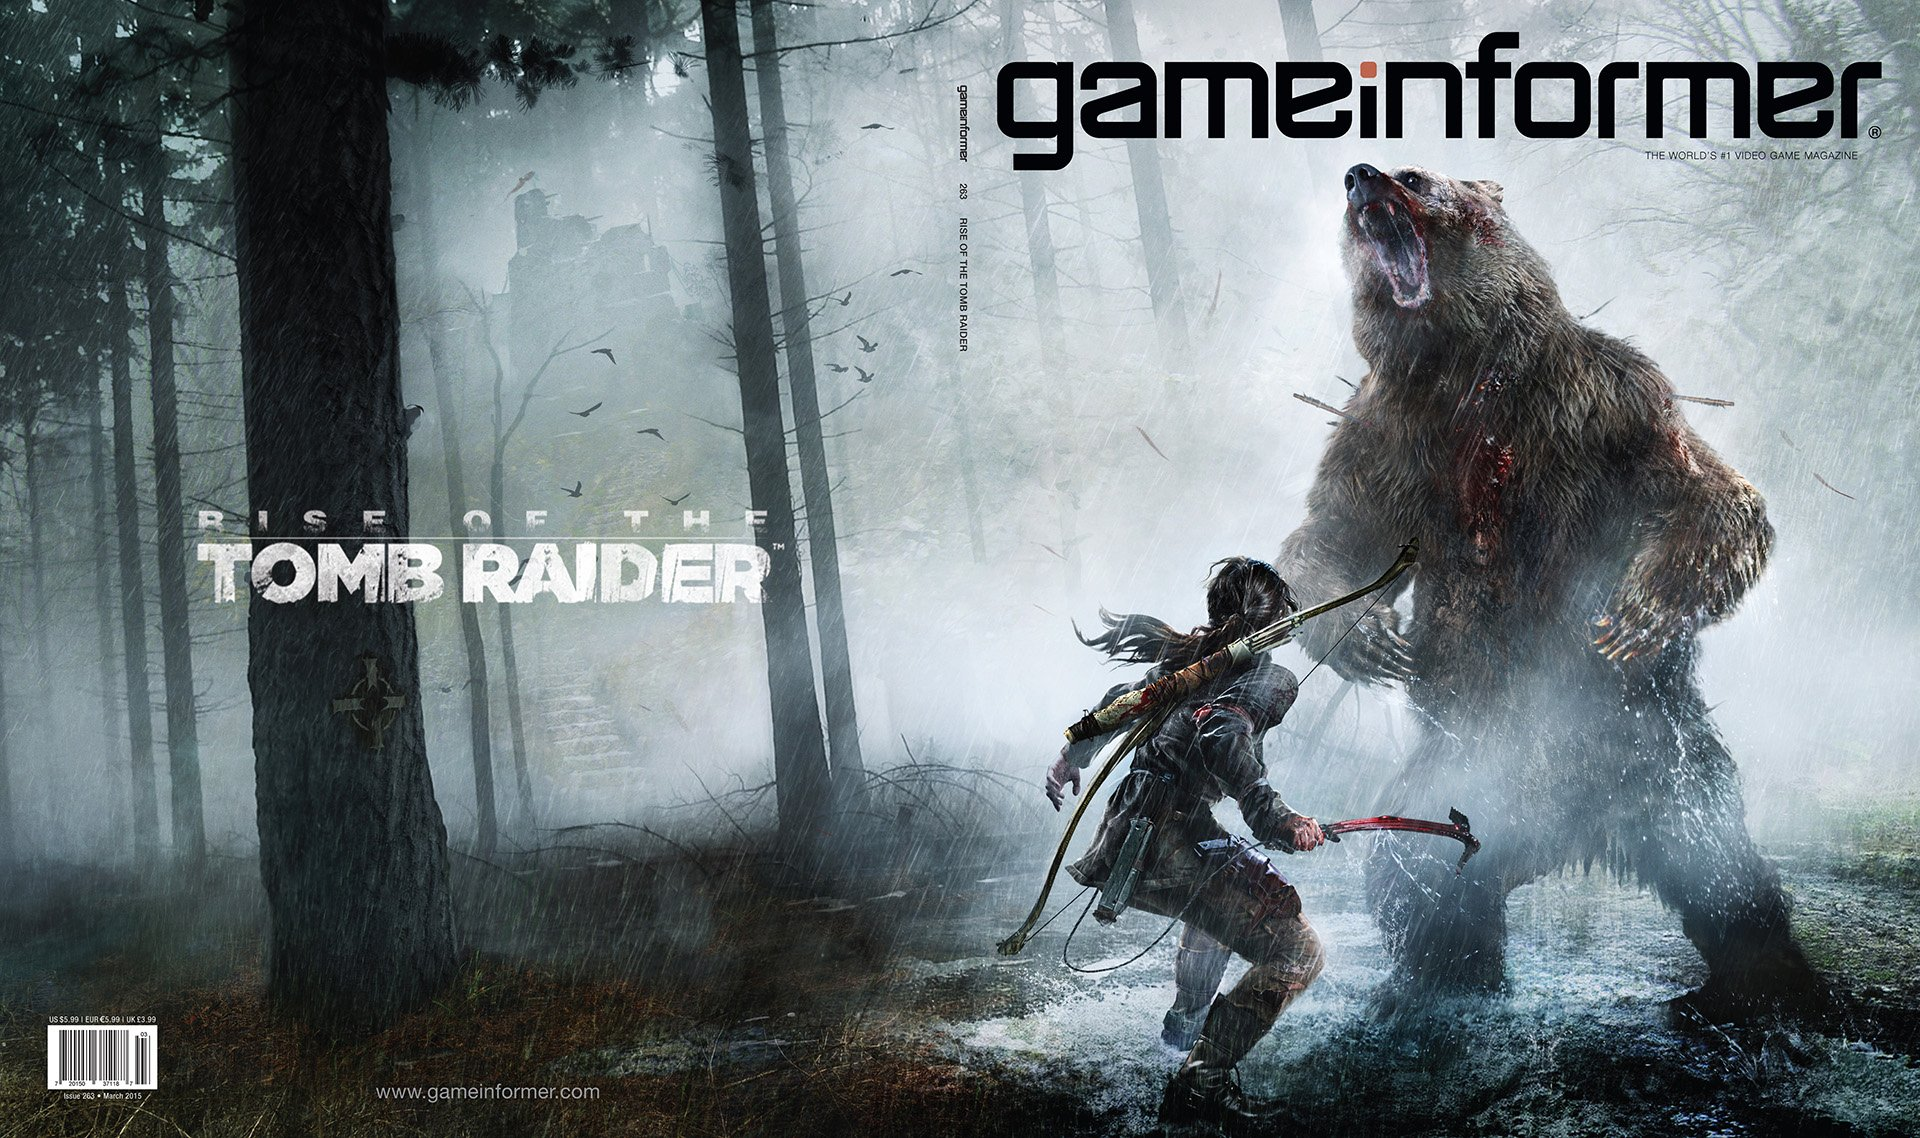 Game Informer 263 - The World's #1 Video Game Magazine